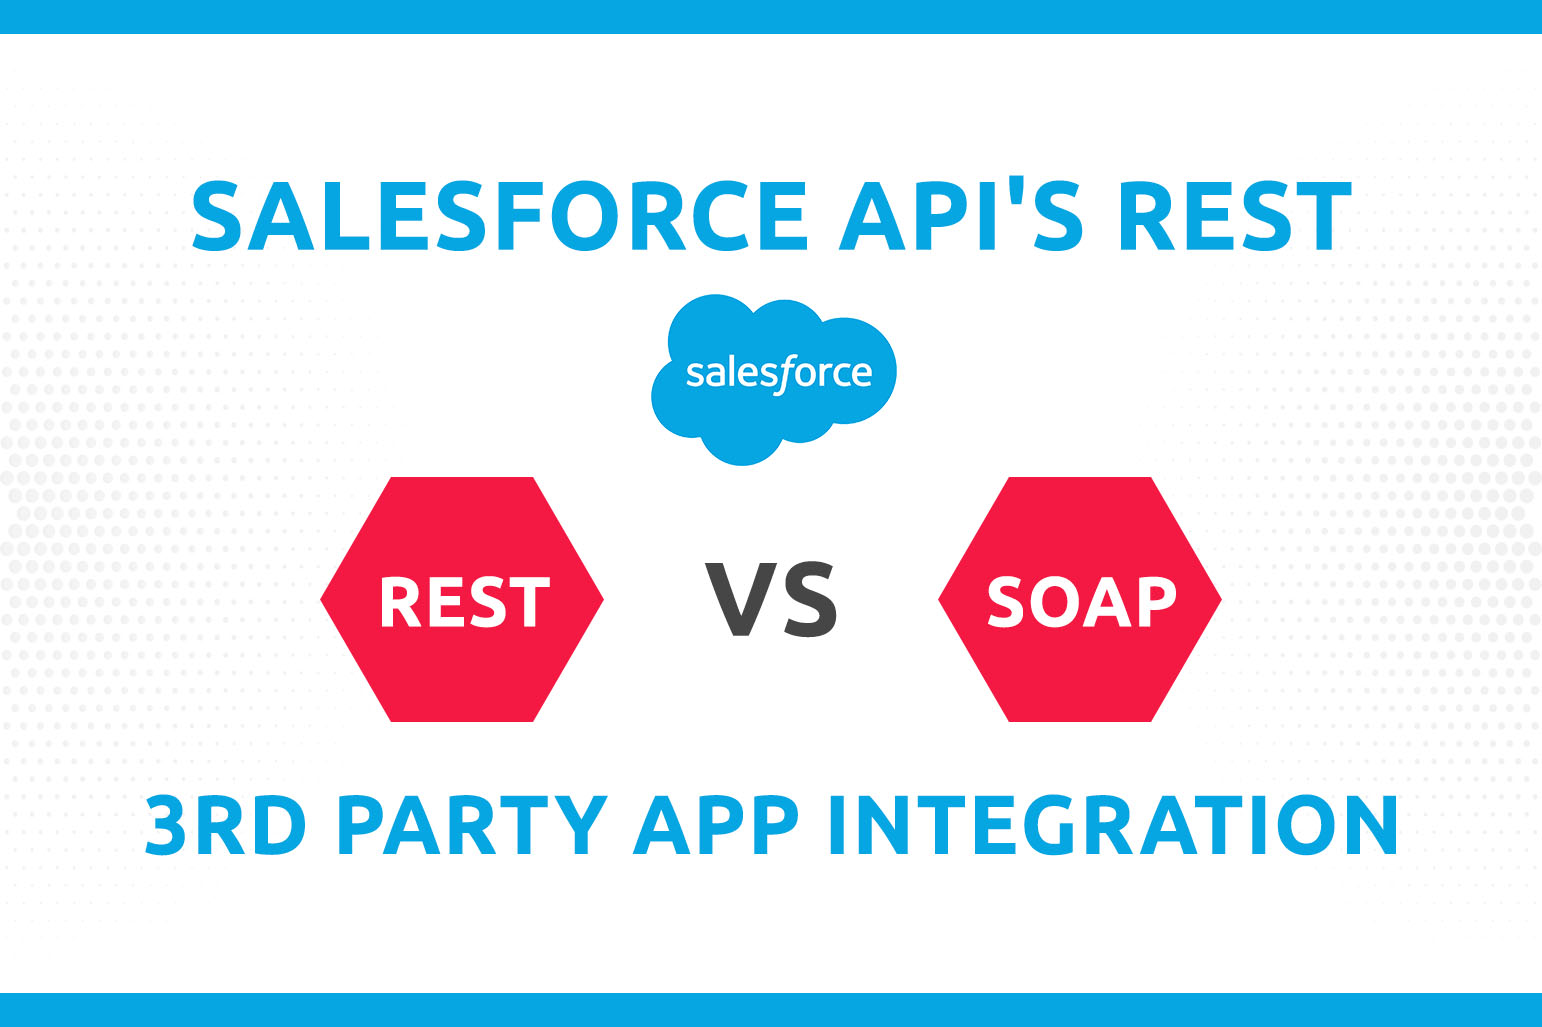 Salesforce API's Rest Vs. Soap Enables 3rd Party App Integration